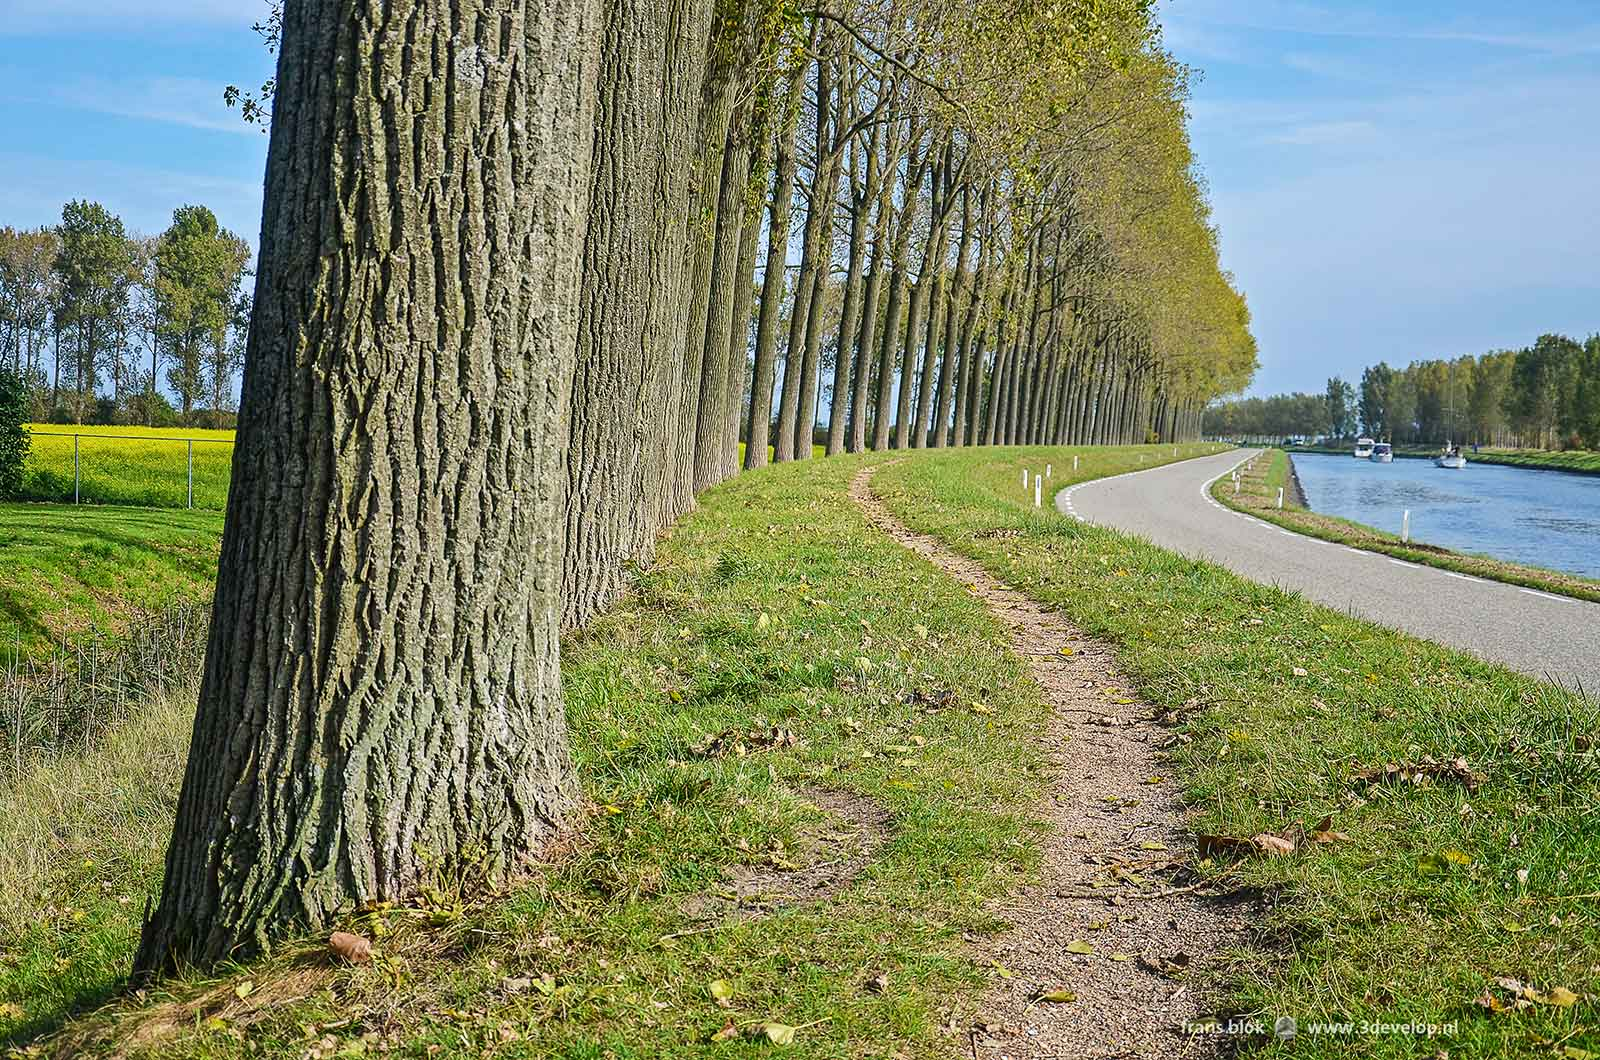 Hiking track and line of trees along the Harbour canal of the city of Goes on the island of Zuid-Beveland, Netherlands.